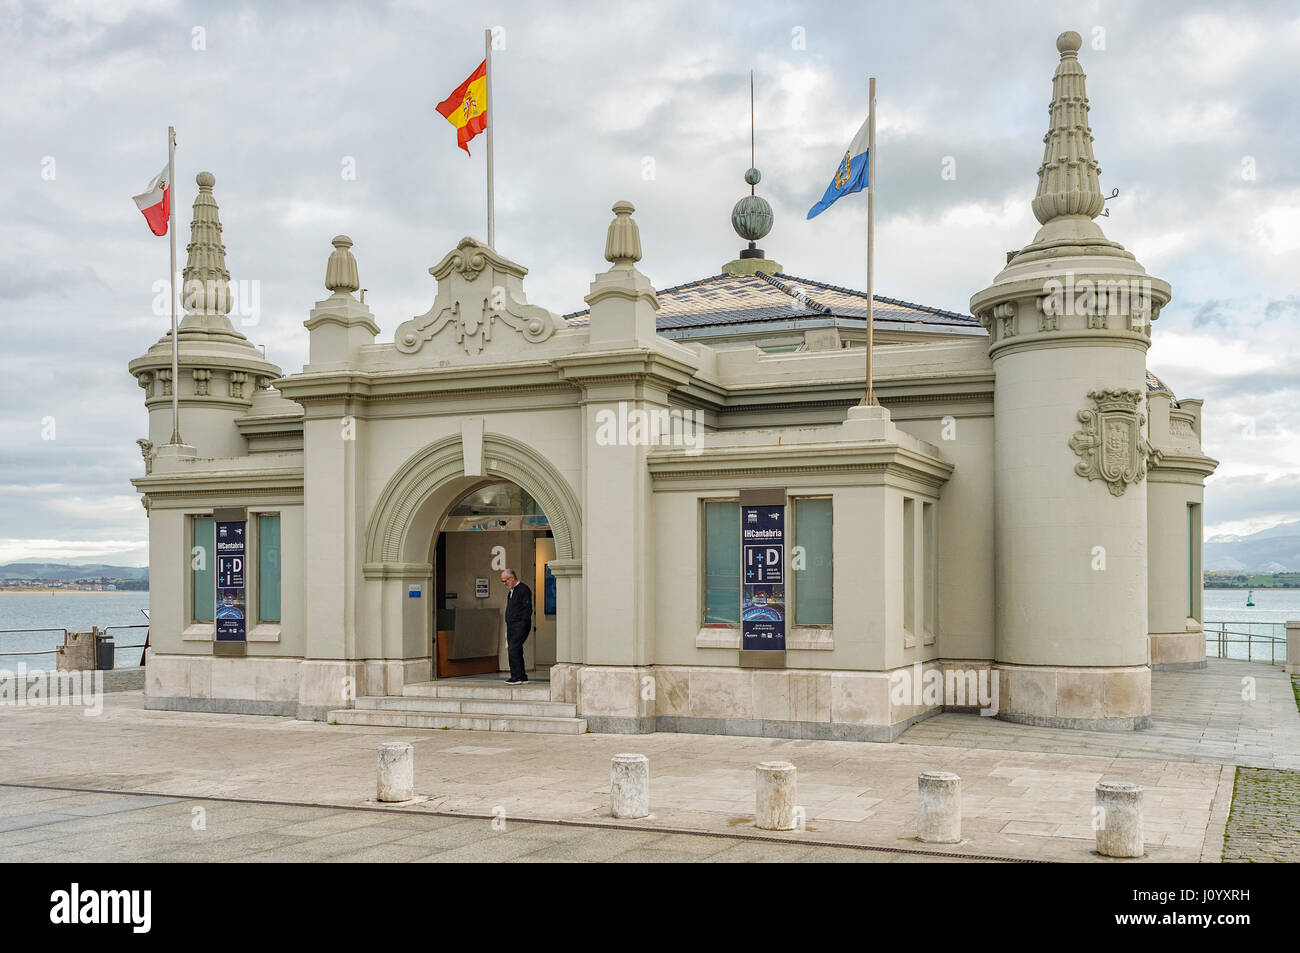 The Palacete del Embarcadero, building of the city of Santander, on the promenade, and gardens of Pereda, Cantabria, - Stock Image